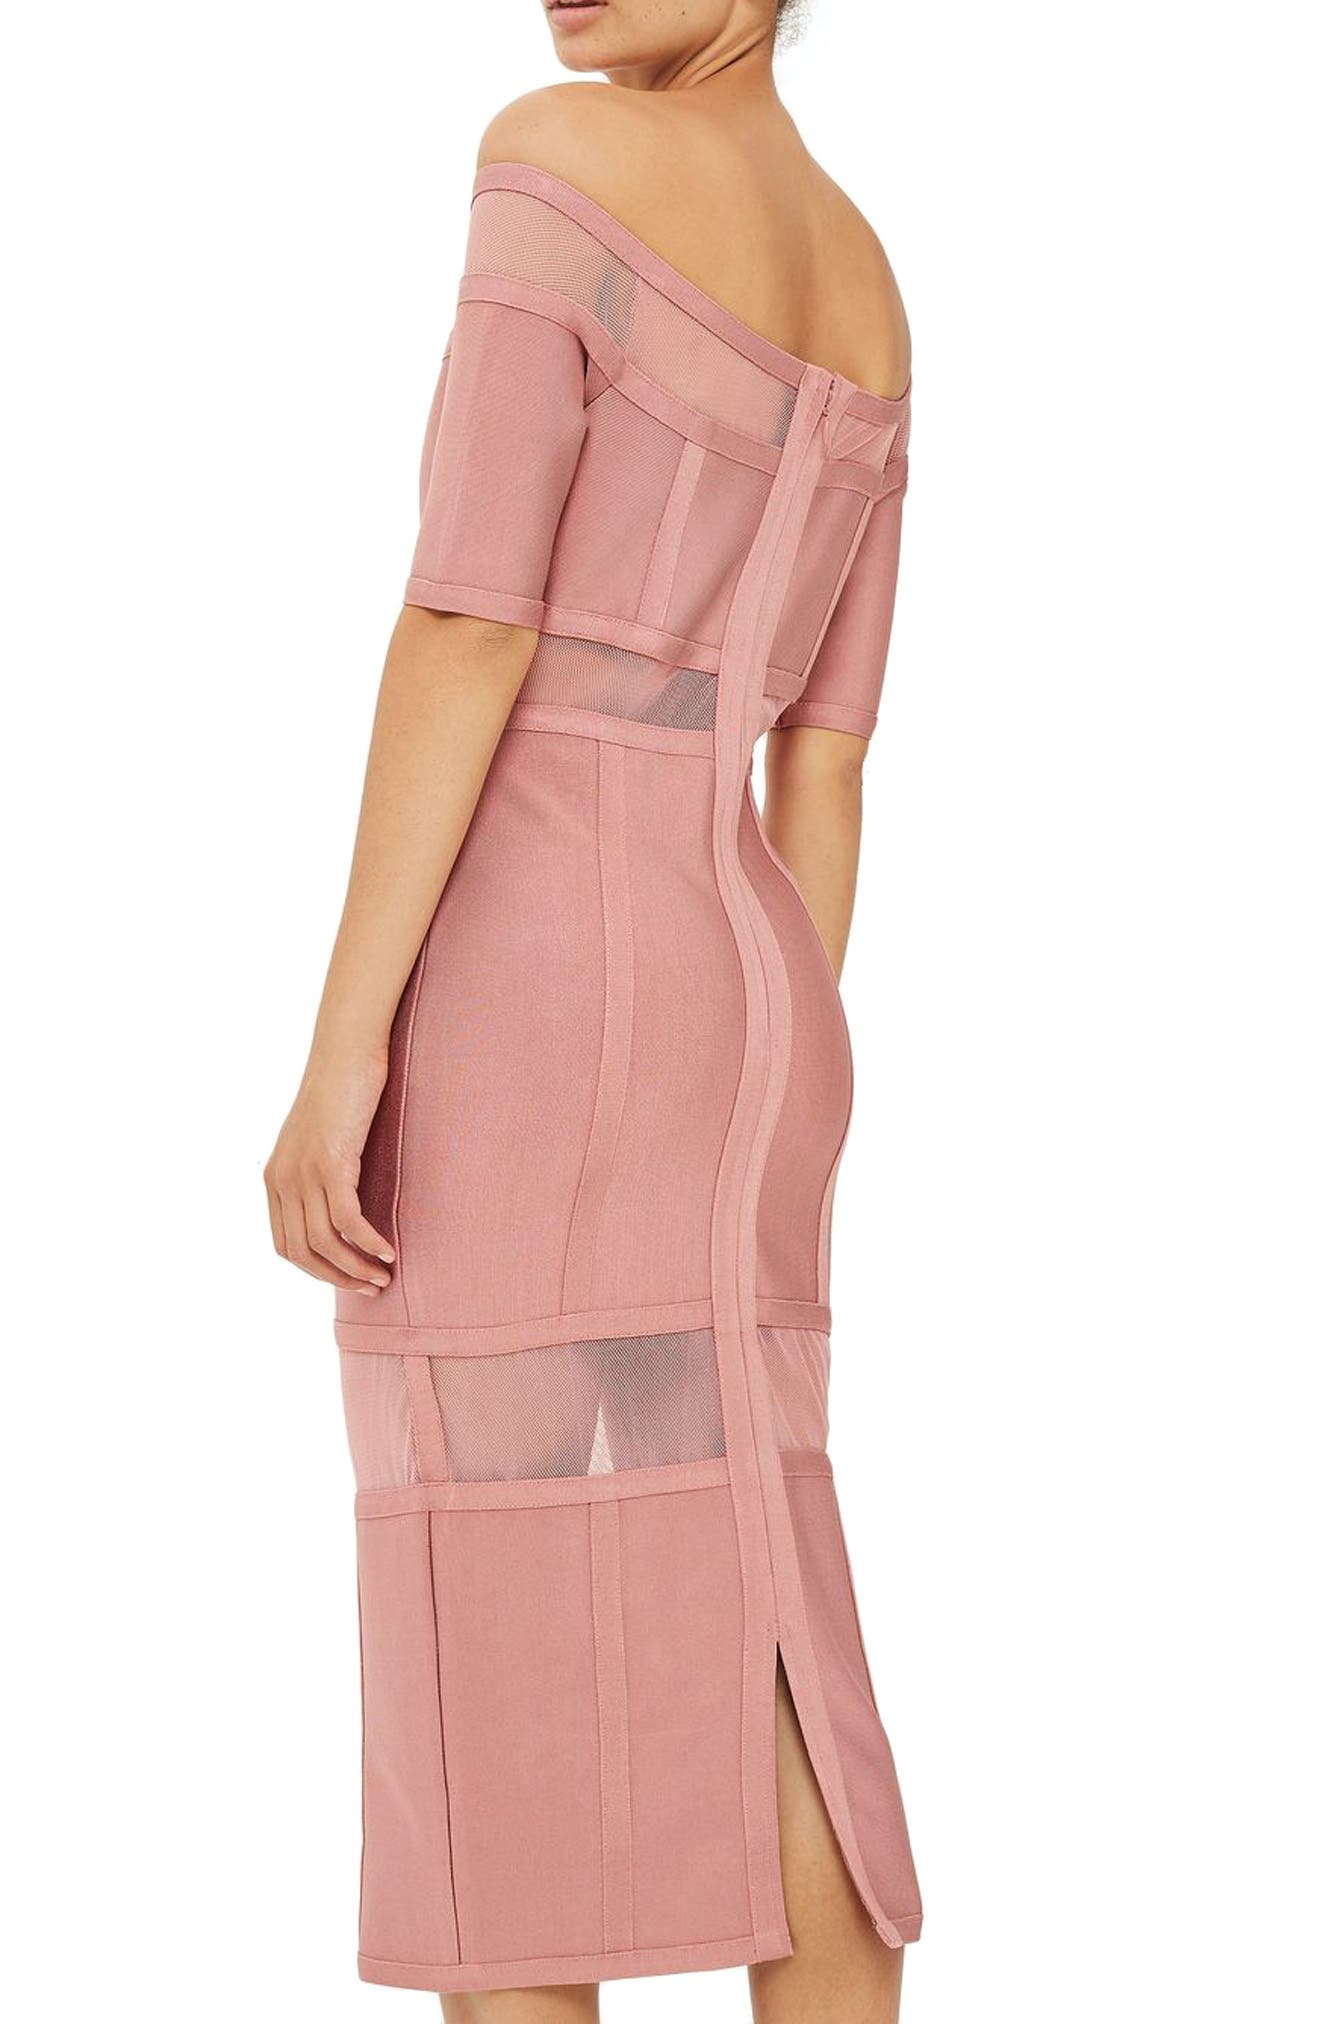 Sheer Panel Off the Shoulder Body-Con Midi Dress,                             Alternate thumbnail 2, color,                             650